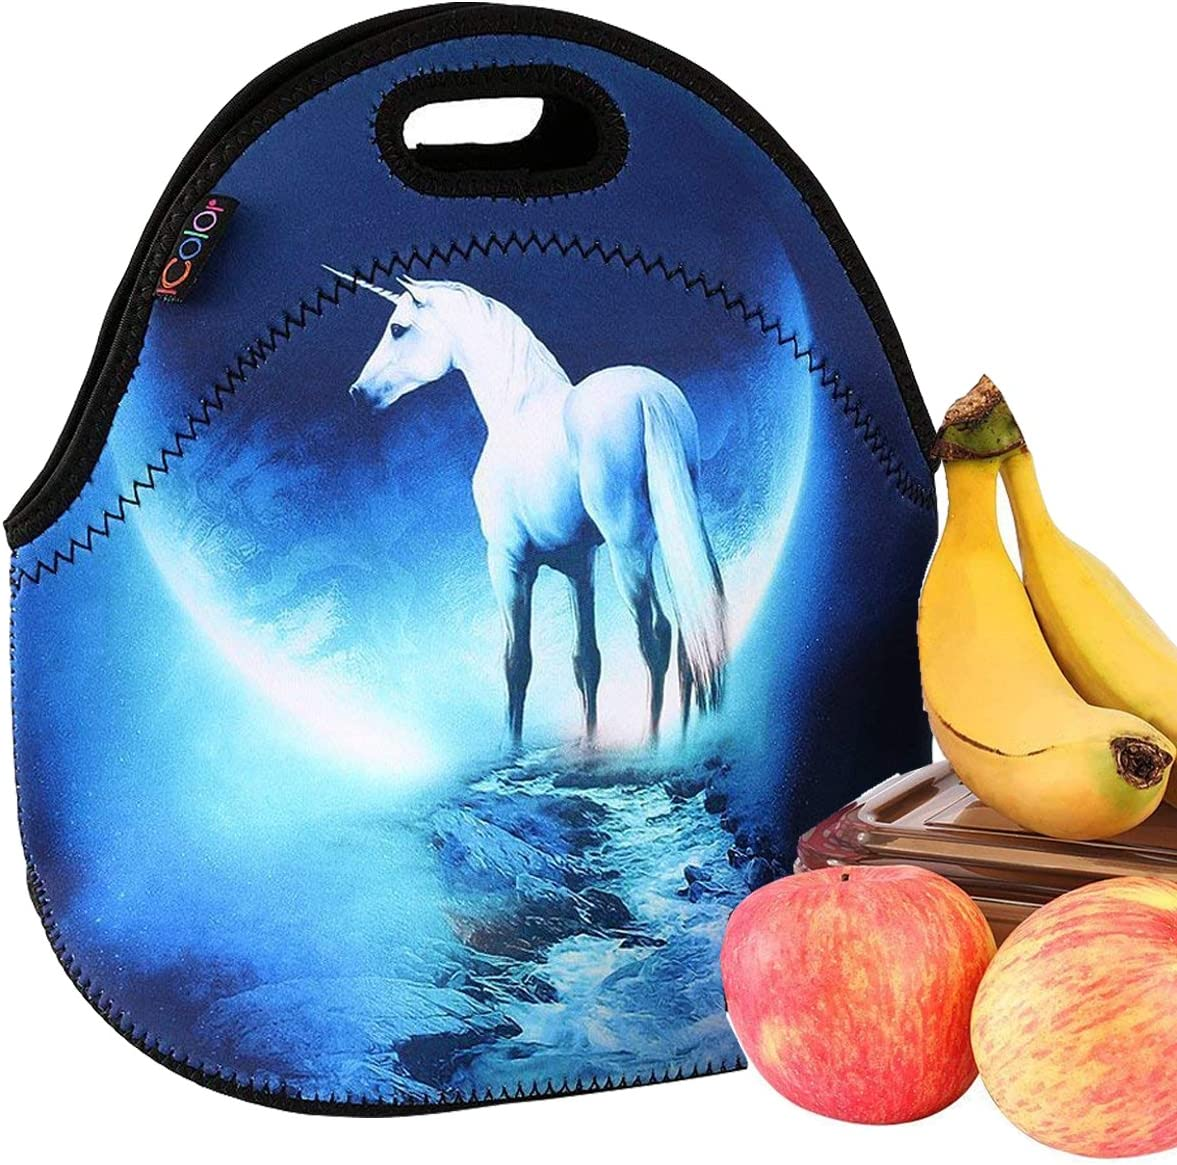 iColor Unicorn Universal Neoprene Sleeve Lunch bag Insulated warm/cold lunchbox Cooler Pouch Shopper Tote baby Portable Waterproof Cover Kids Handbag Food Carrying Case Protector Handle School Work